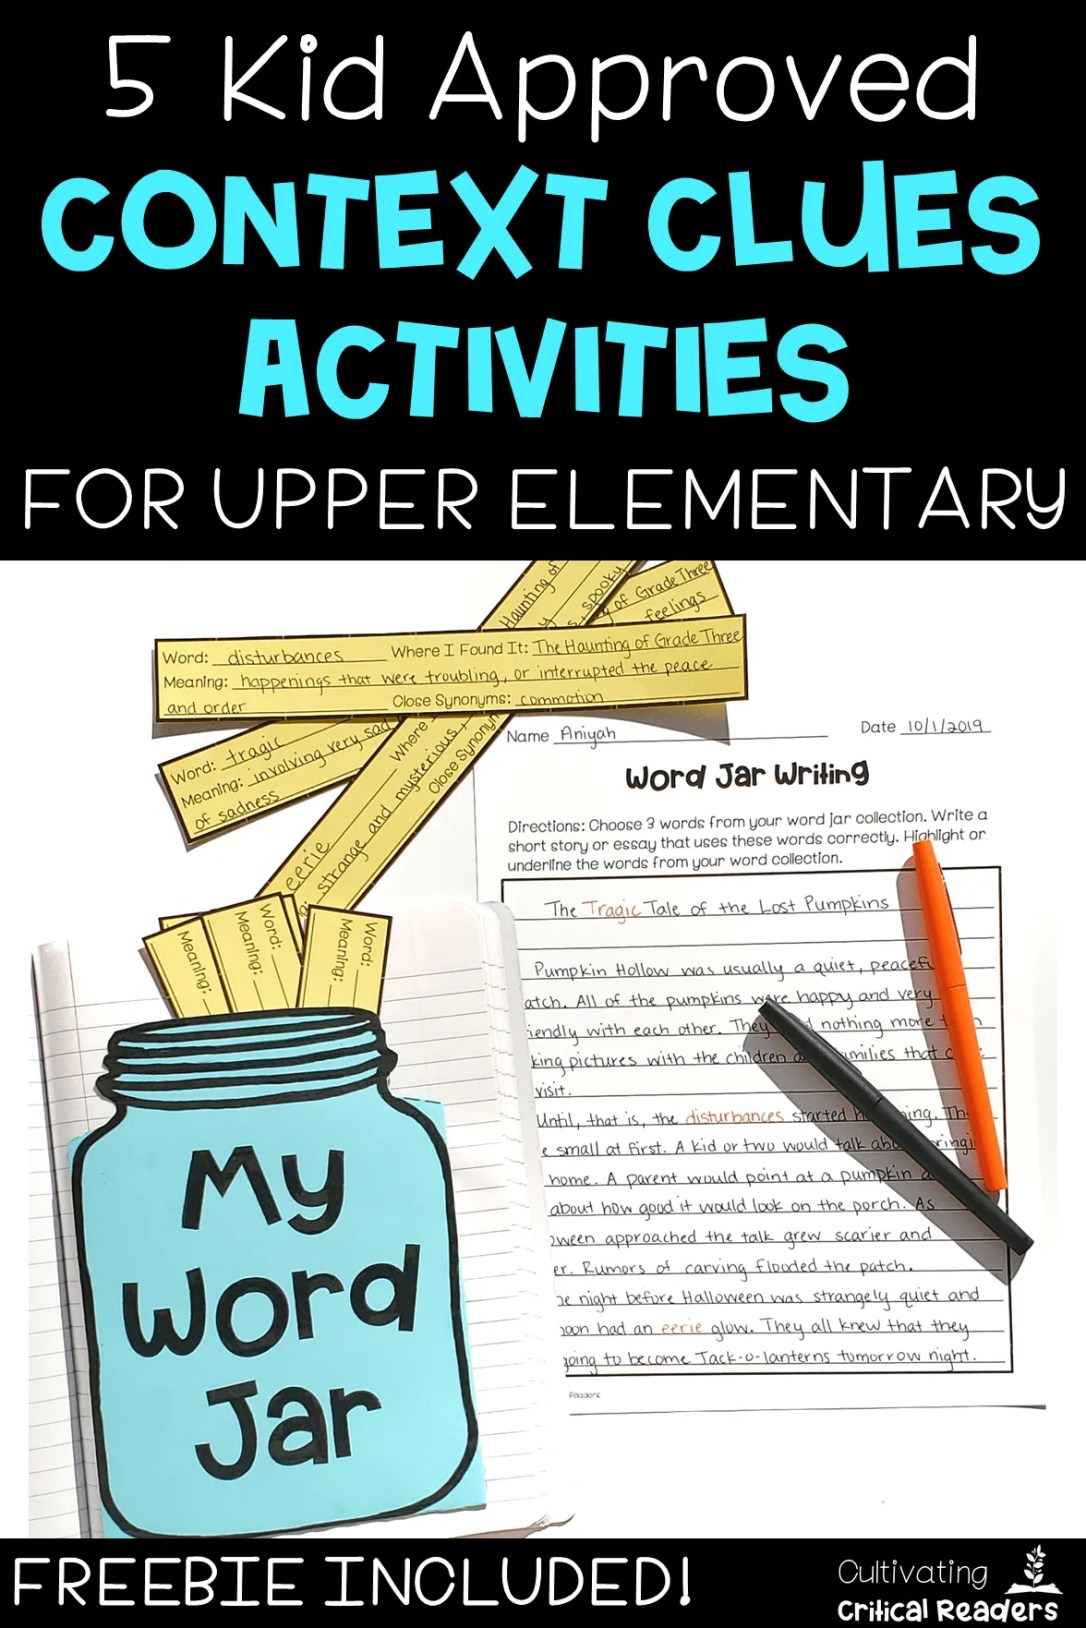 5 Kid Approved Context Clues Activities for Upper Elementary from Cultivating Critical Readers